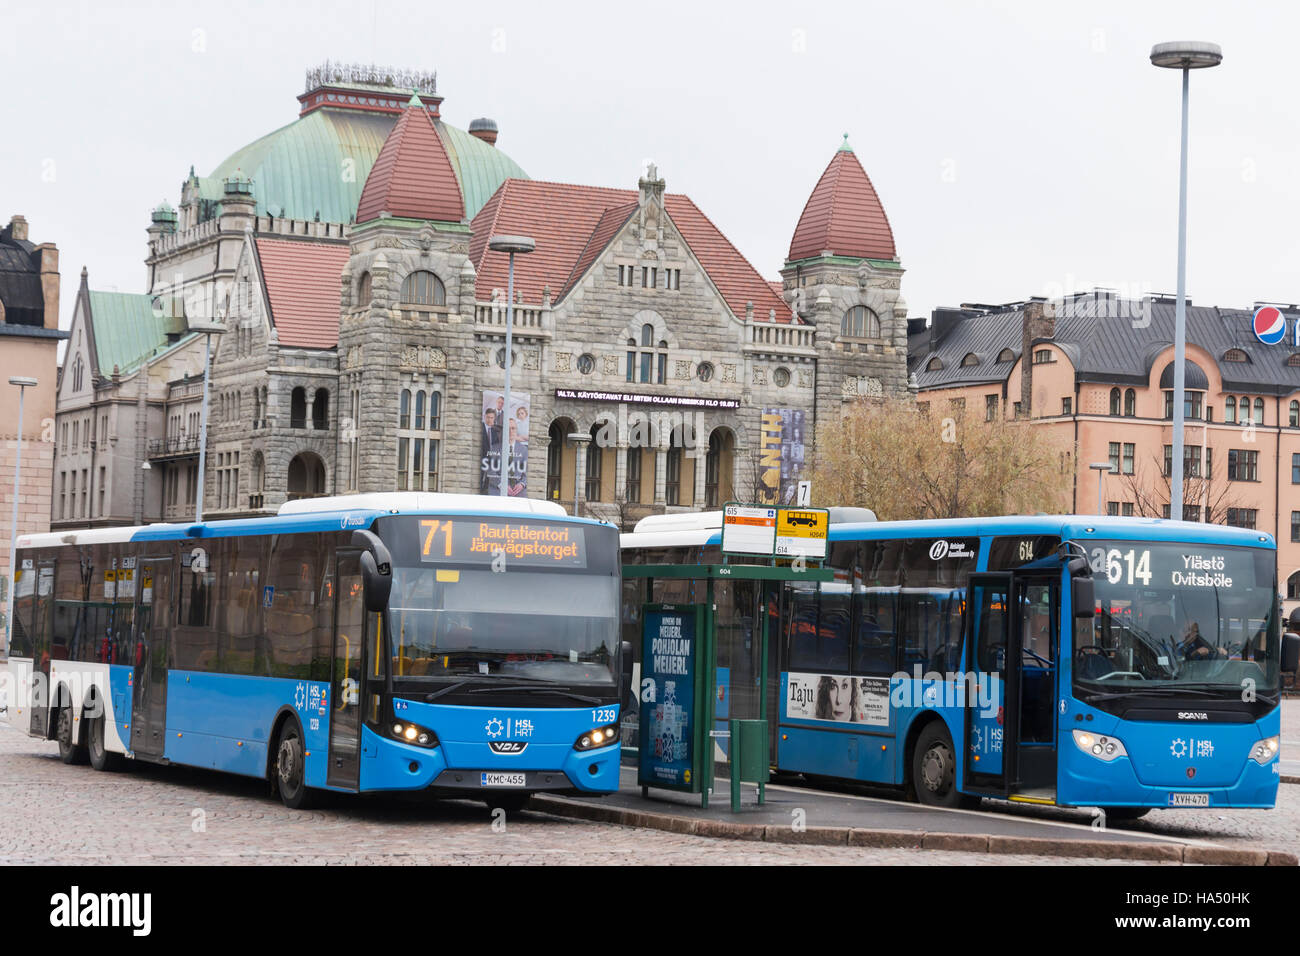 Buses ready to depart in Helsinki - Stock Image